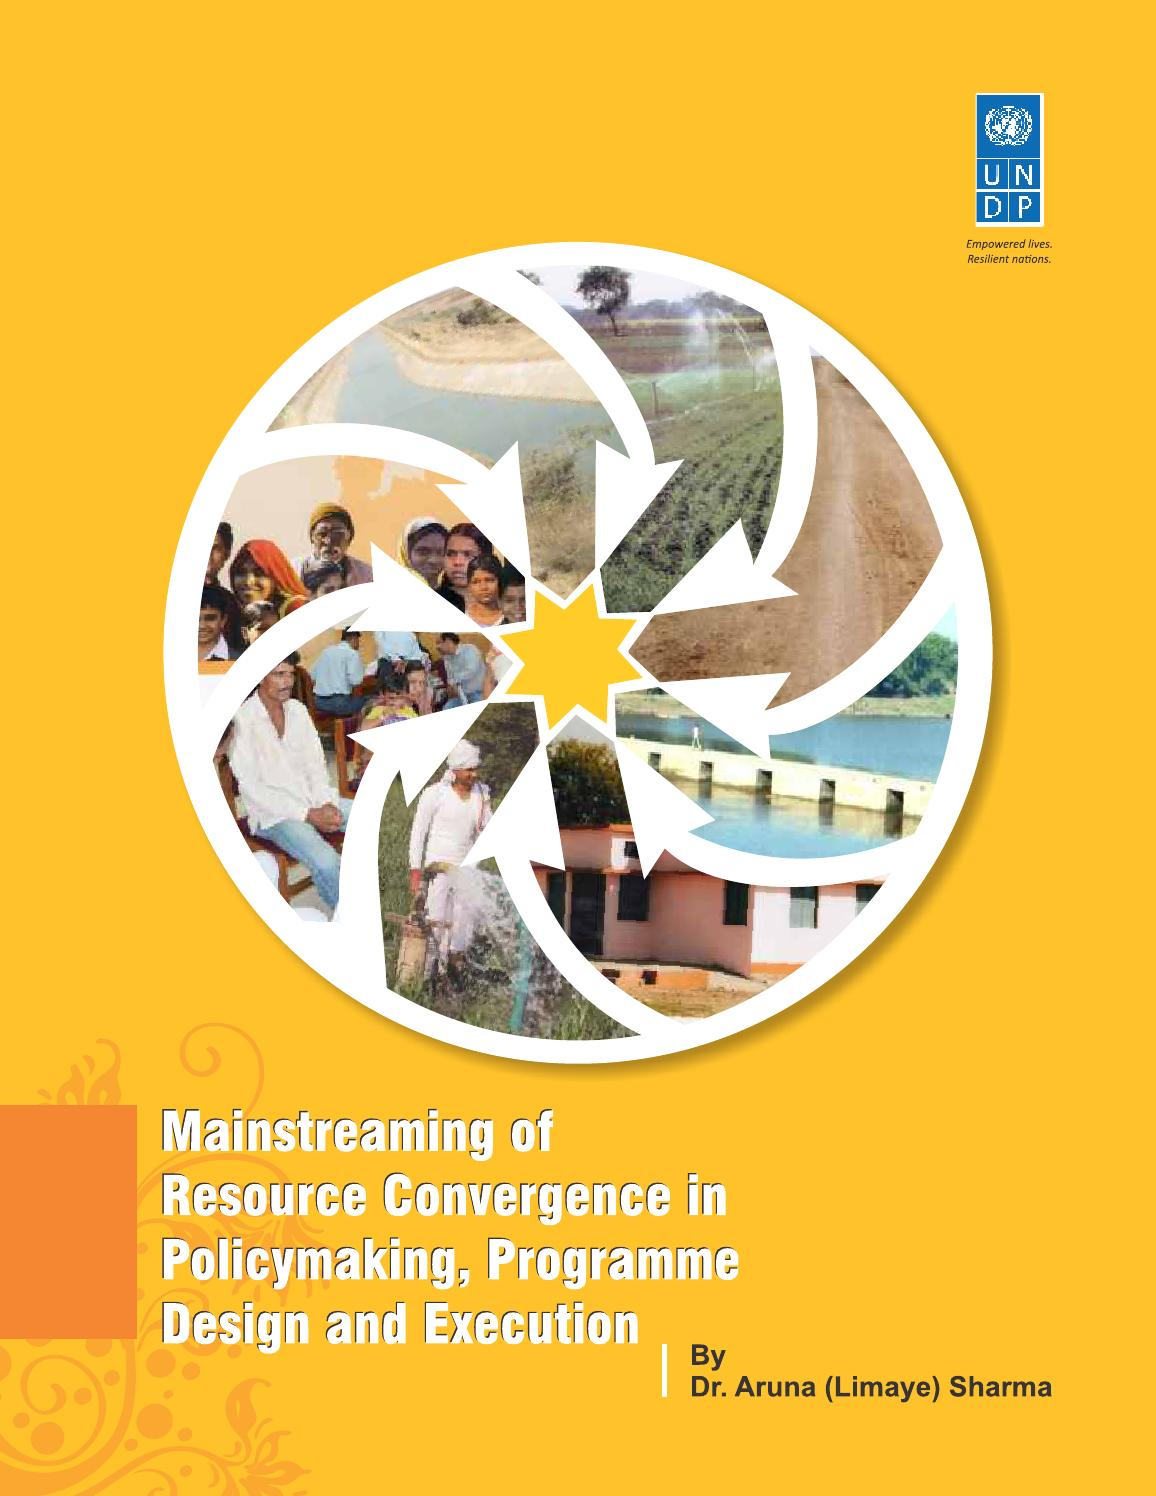 Mainstreaming of resource convergence in policy making